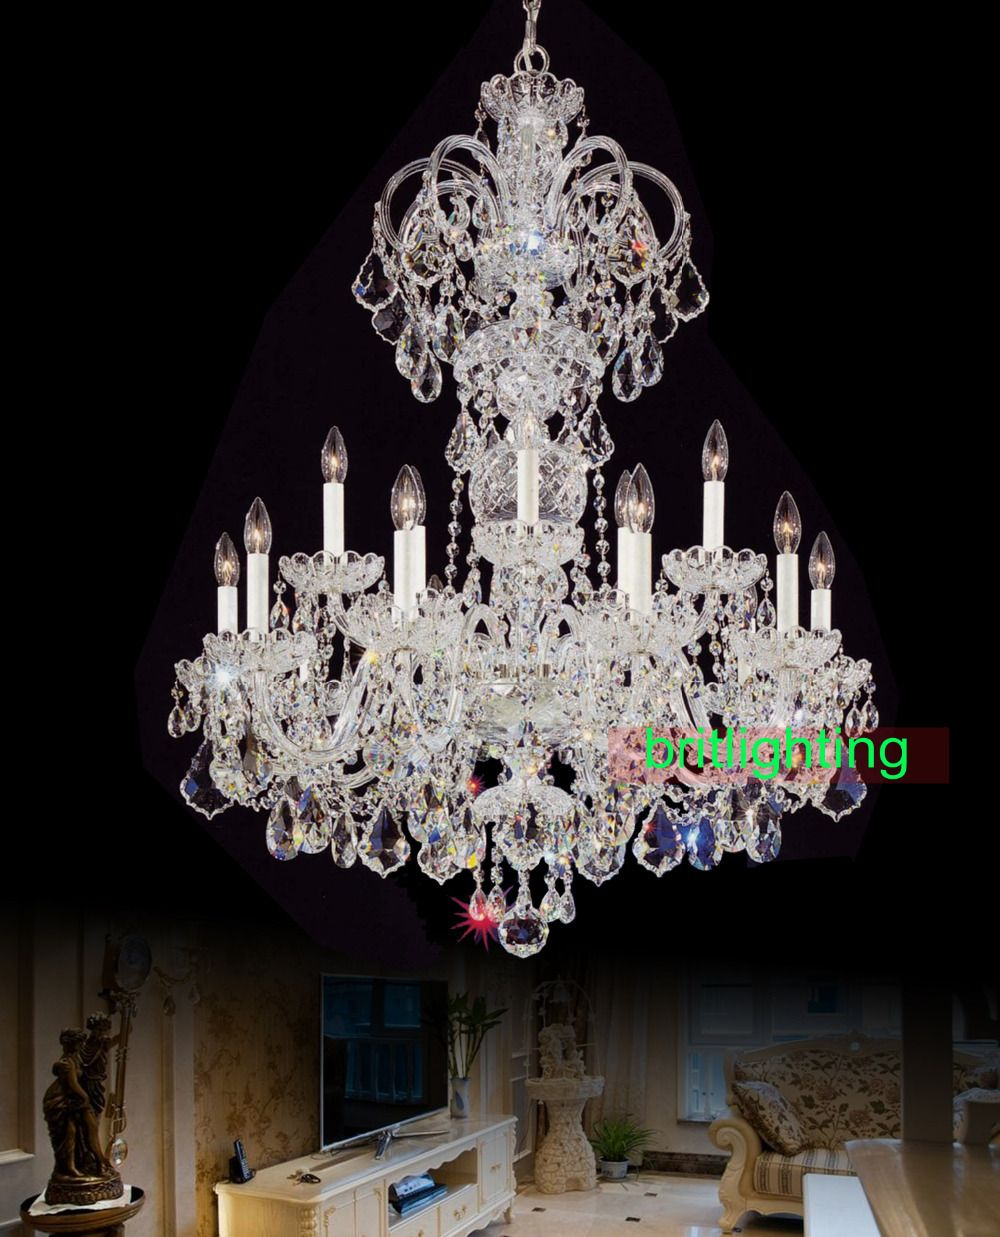 Reviews modern big chandelier lamps european candle chandeliers home reviews modern big chandelier lamps european candle chandeliers home lighting decoration bohemian crystal chandelier with crystals aloadofball Choice Image